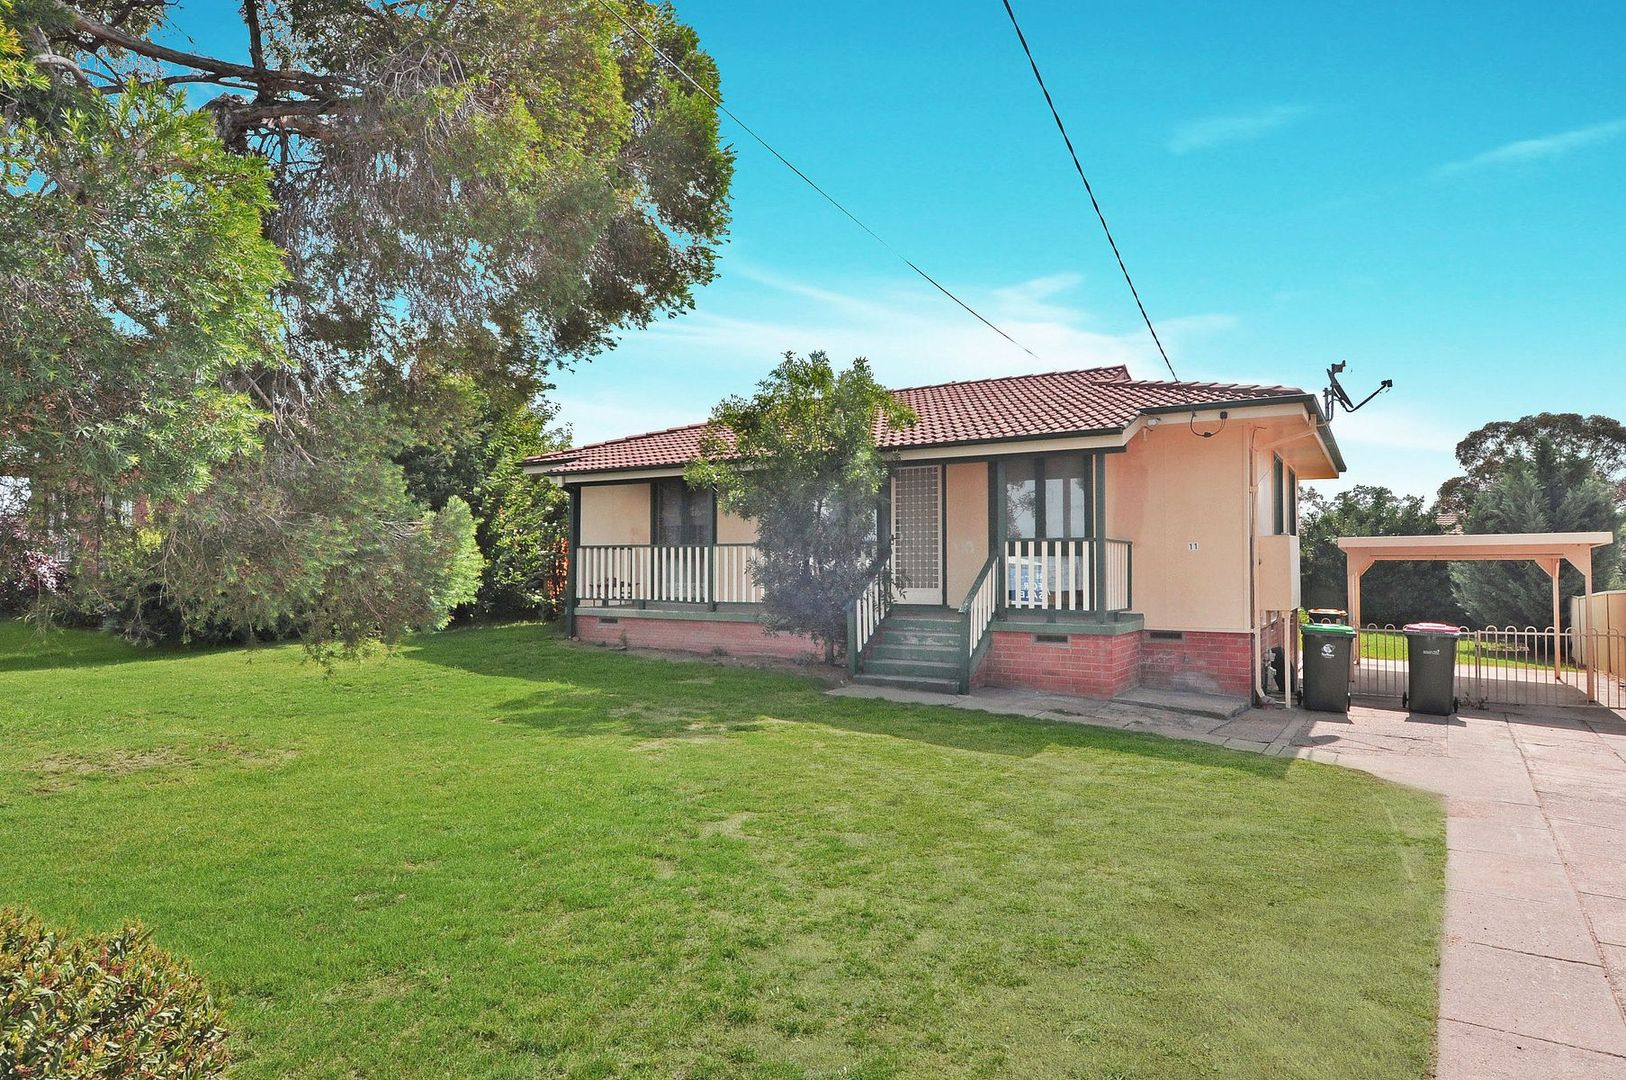 11 Currawong Street, South Bathurst NSW 2795, Image 0